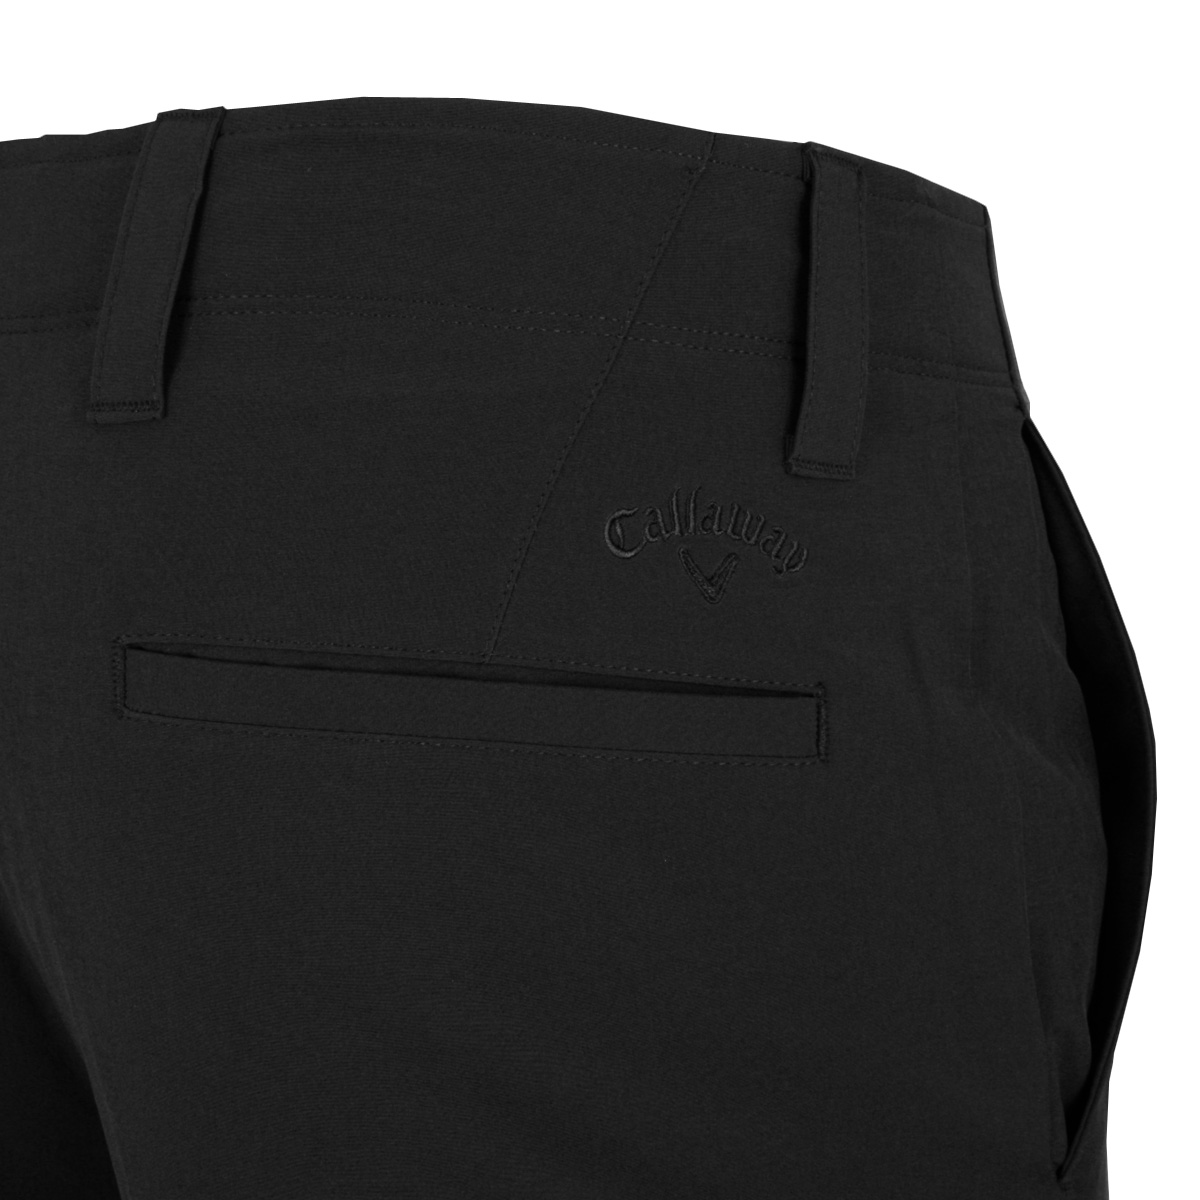 Callaway-Golf-Mens-2020-Chev-Tech-II-Lightweight-Golf-Trousers-27-OFF-RRP thumbnail 7